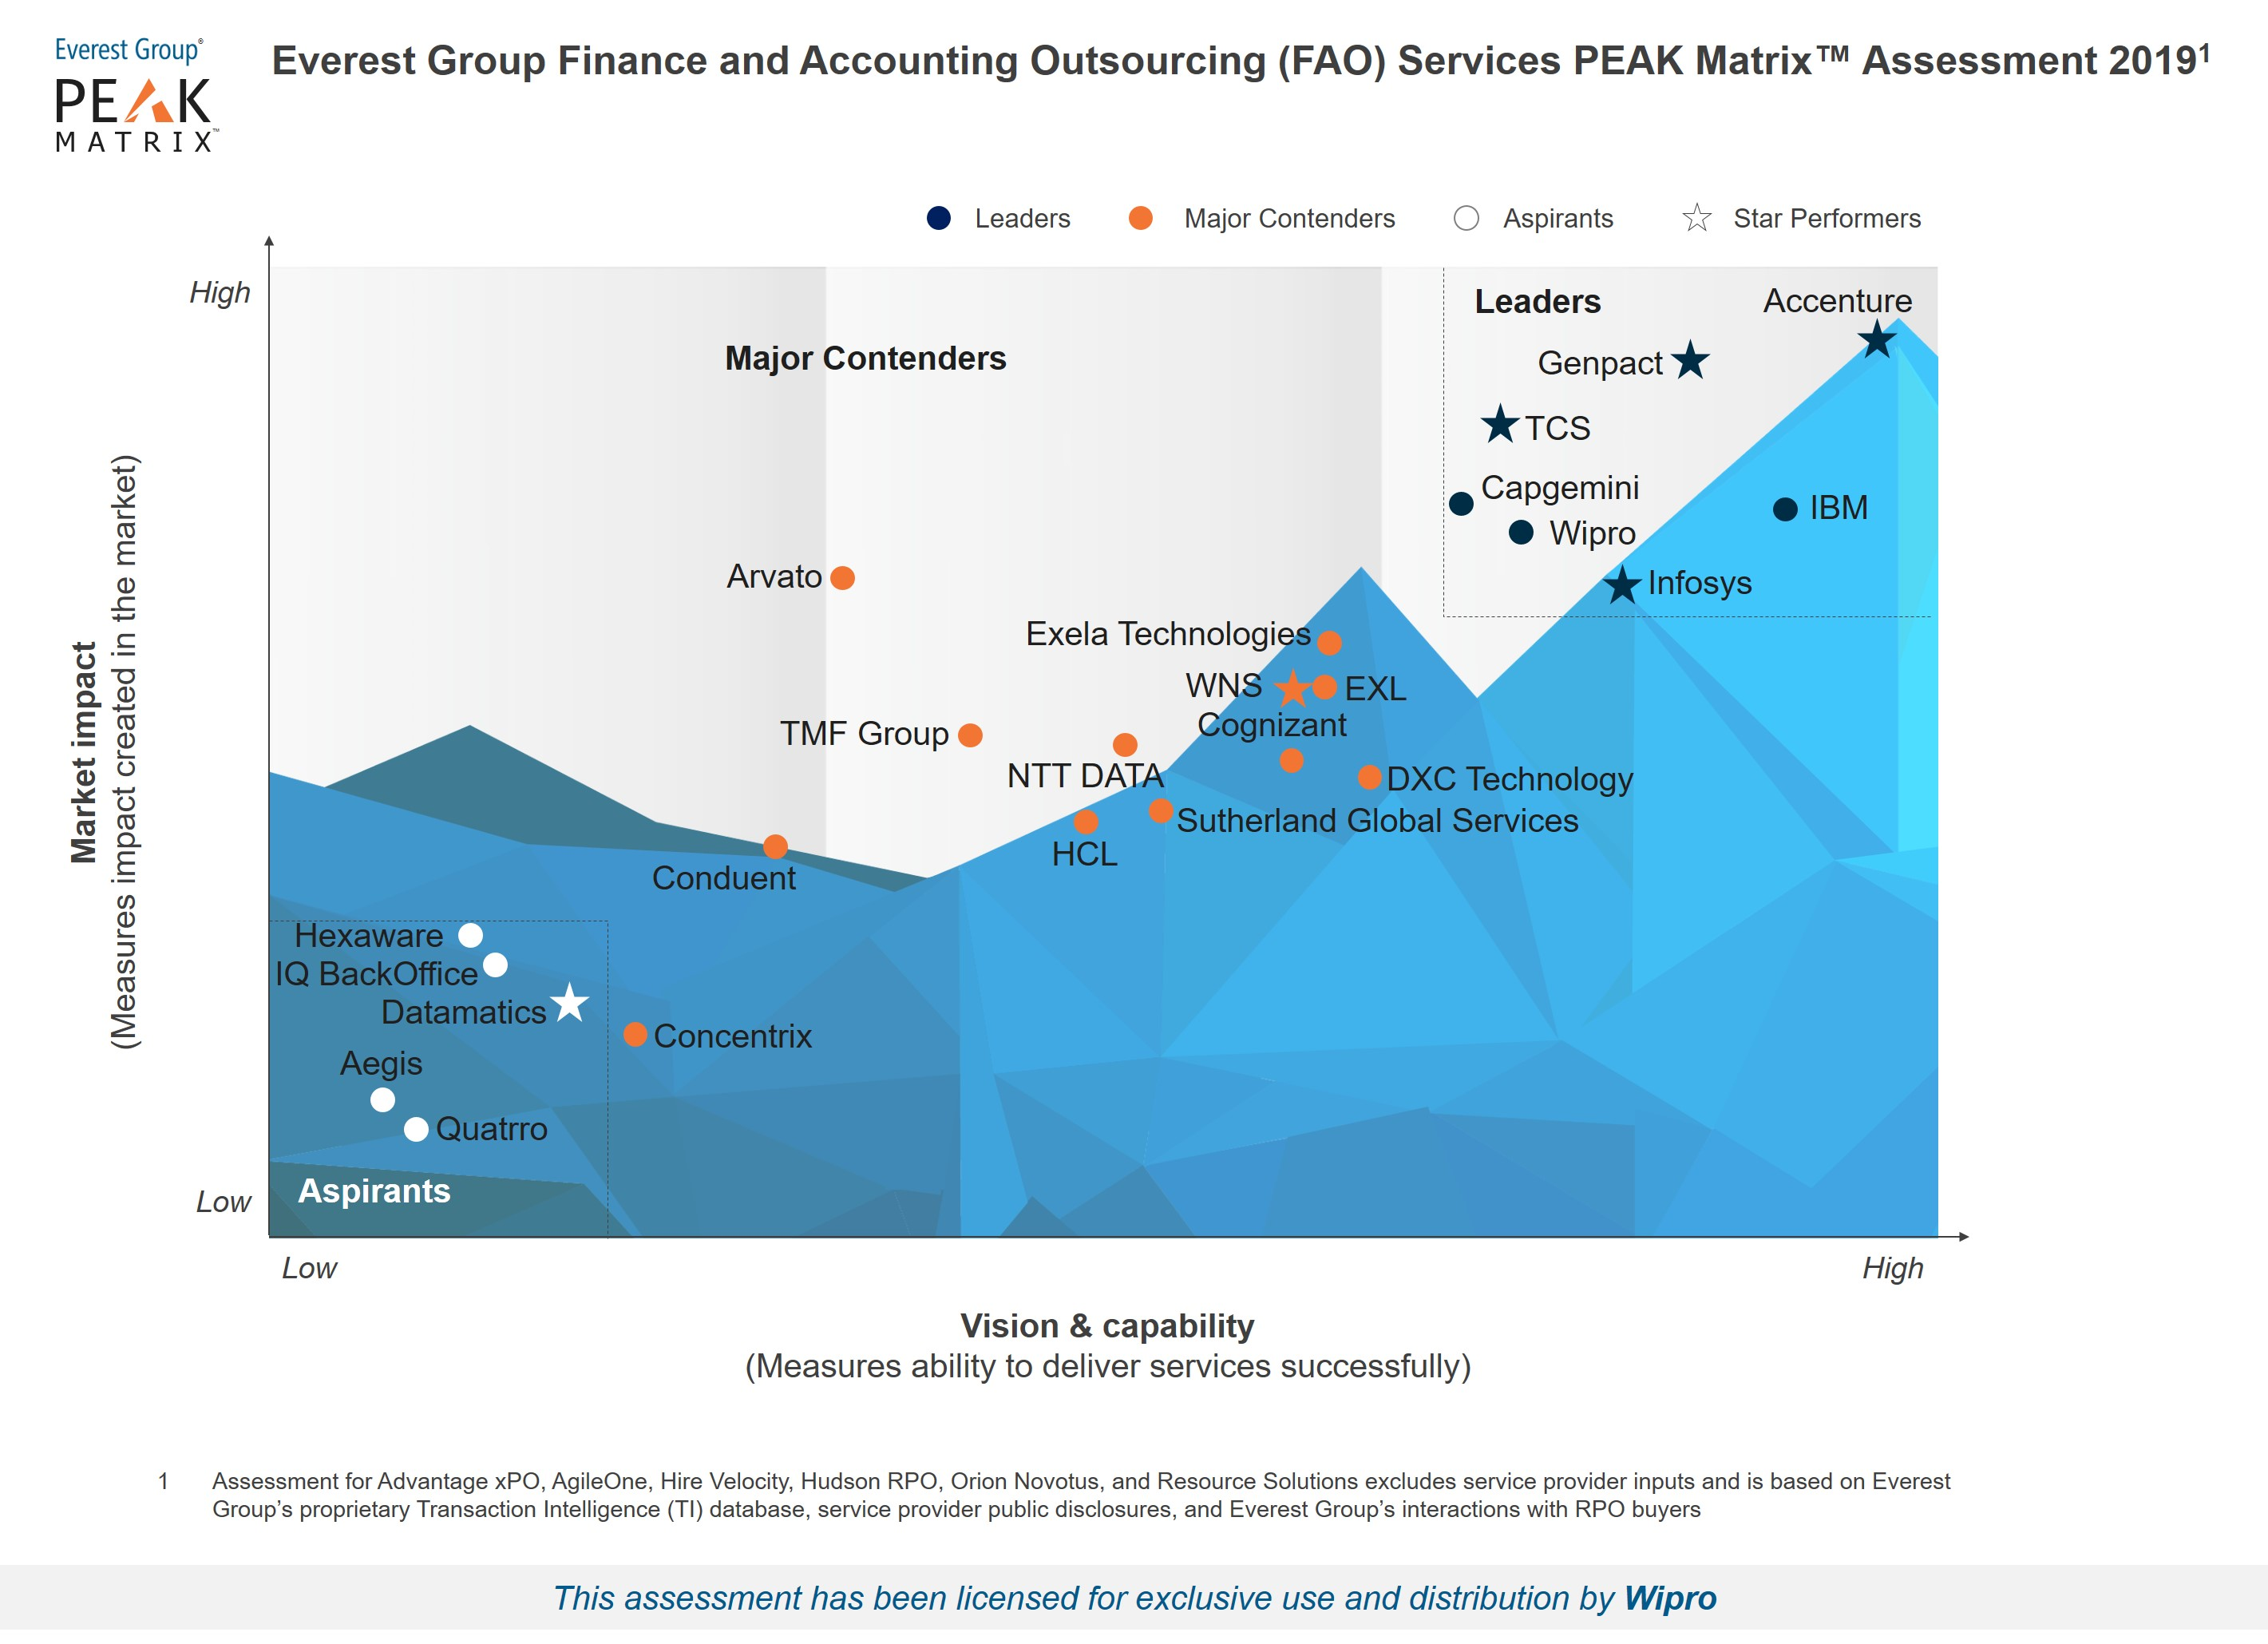 Wipro is a leader in Finance and Accounting Outsourcing (FAO) - Service Provider Landscape with Services PEAK Matrix™ Assessment 2019